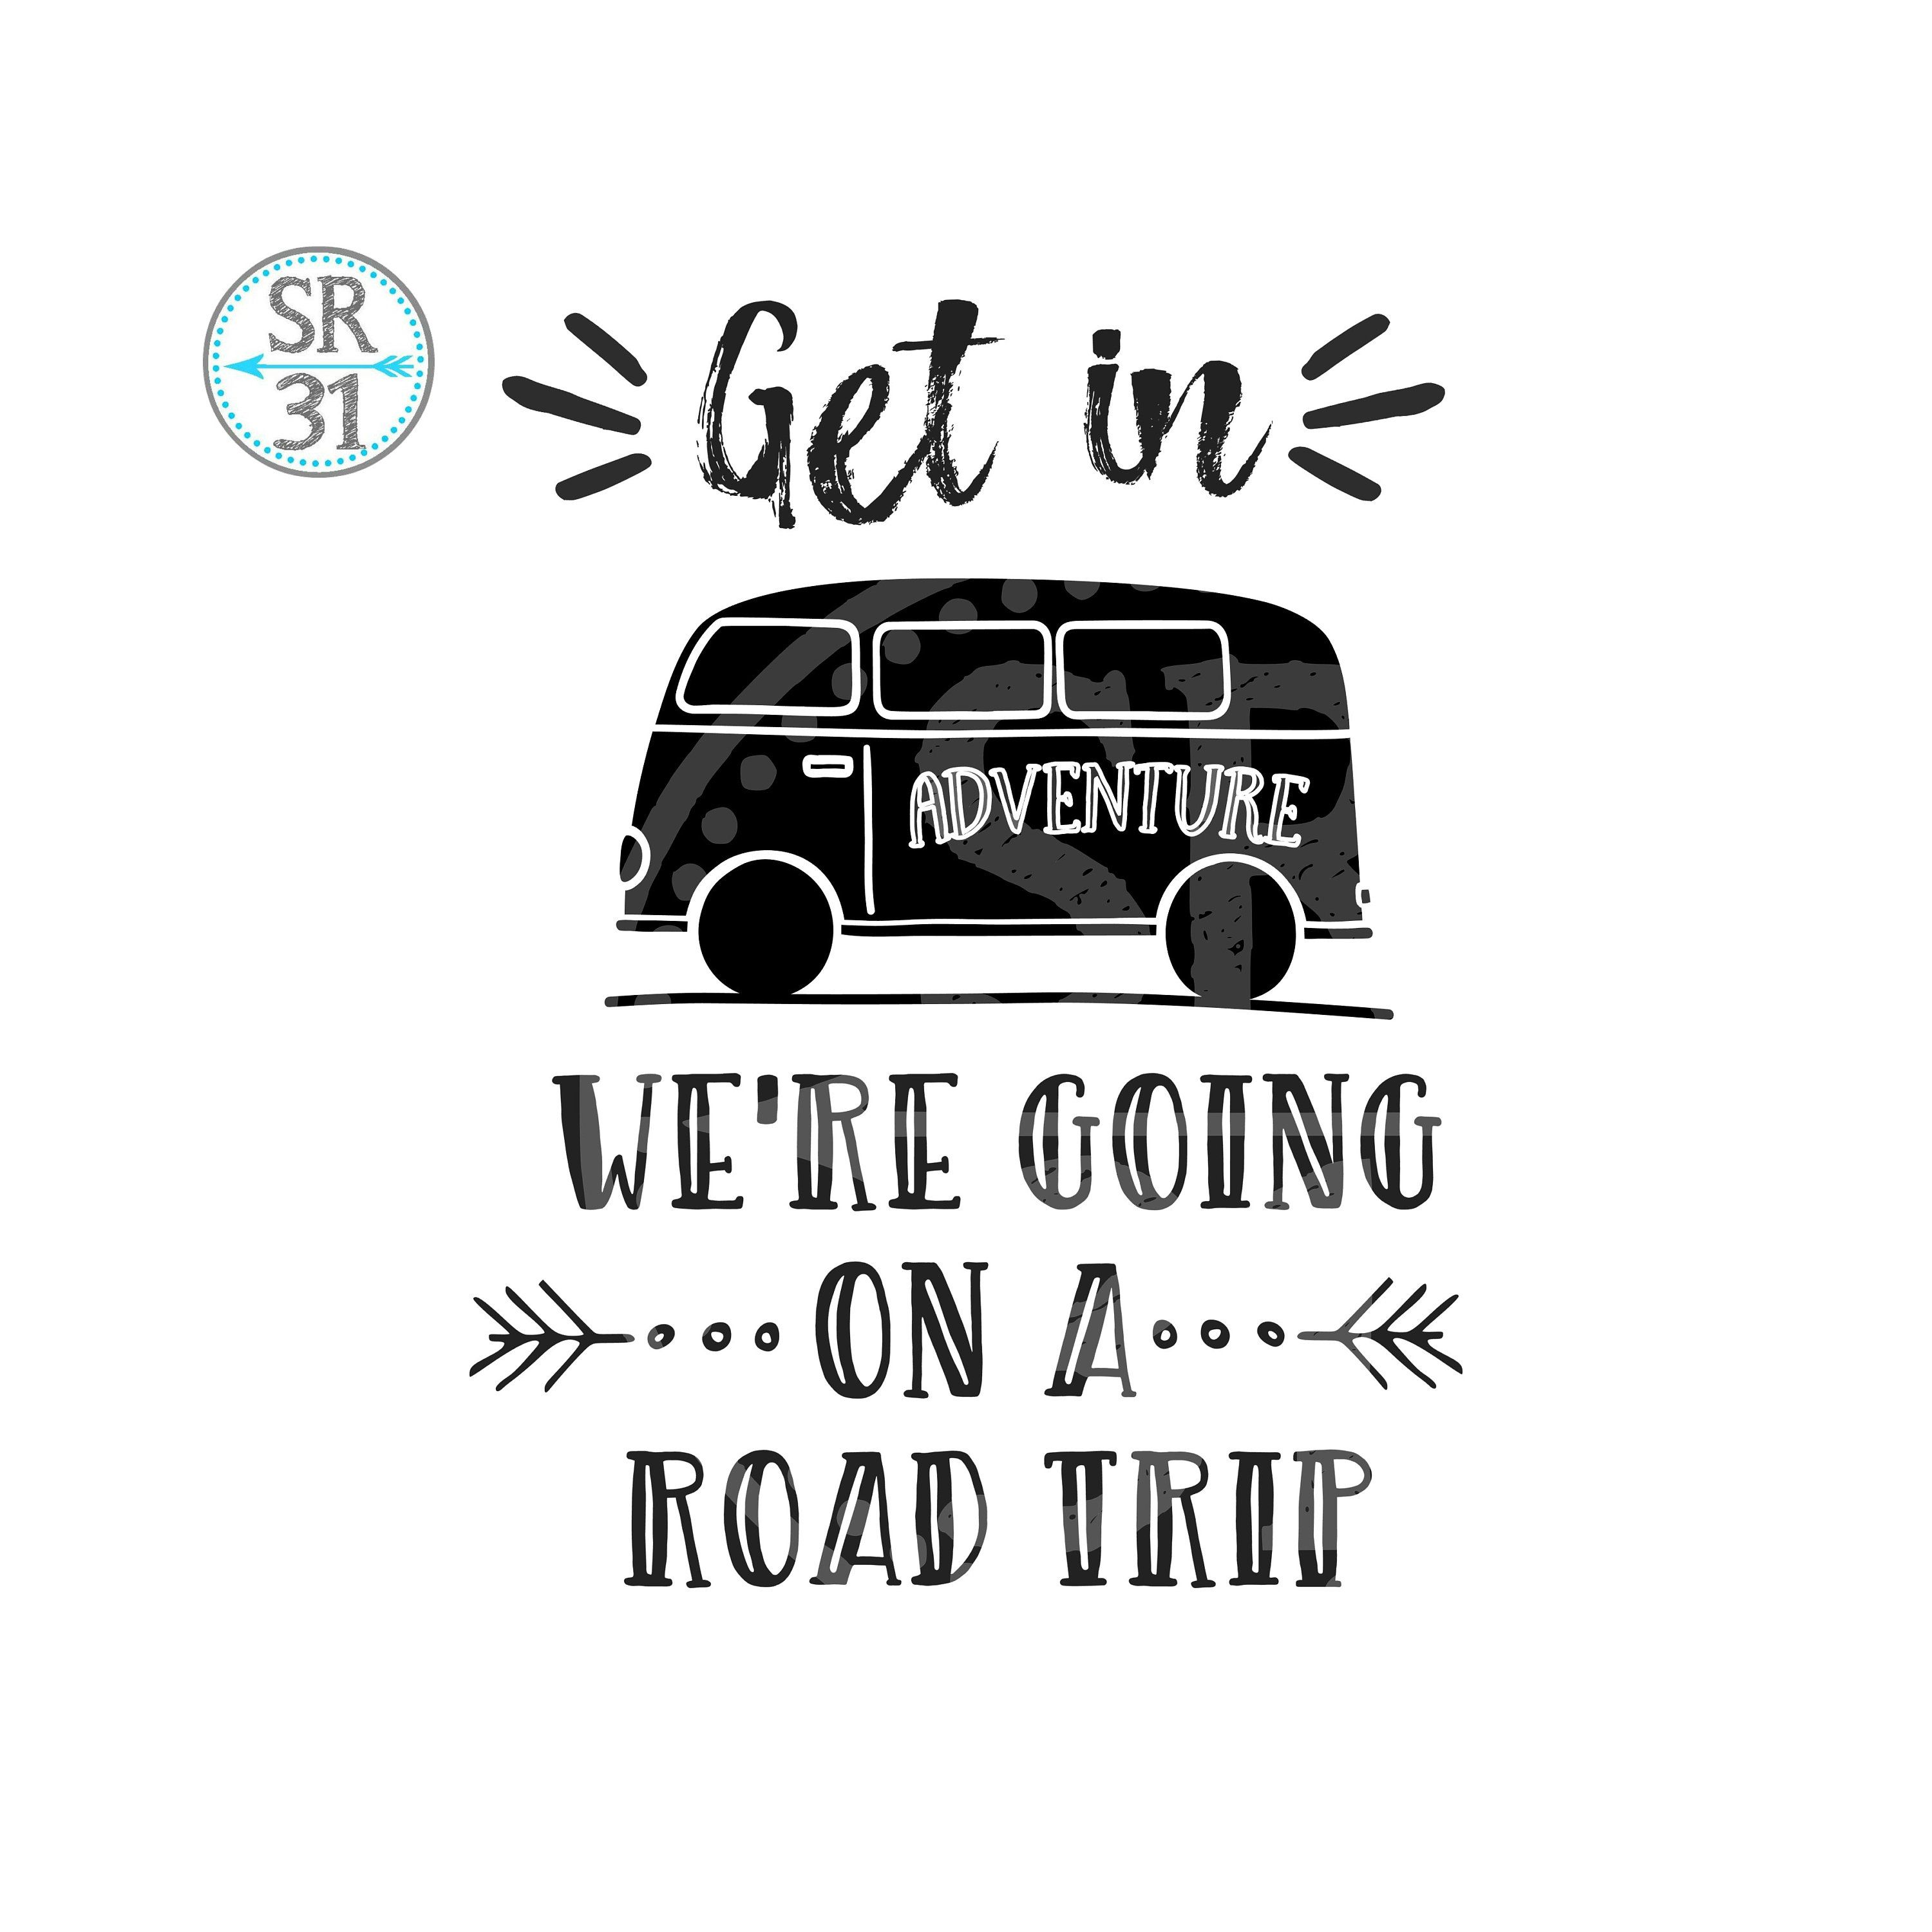 Road Trip Sublimation Get In We Are Going On A Trip Png Etsy Road Trip Trip Going On A Trip